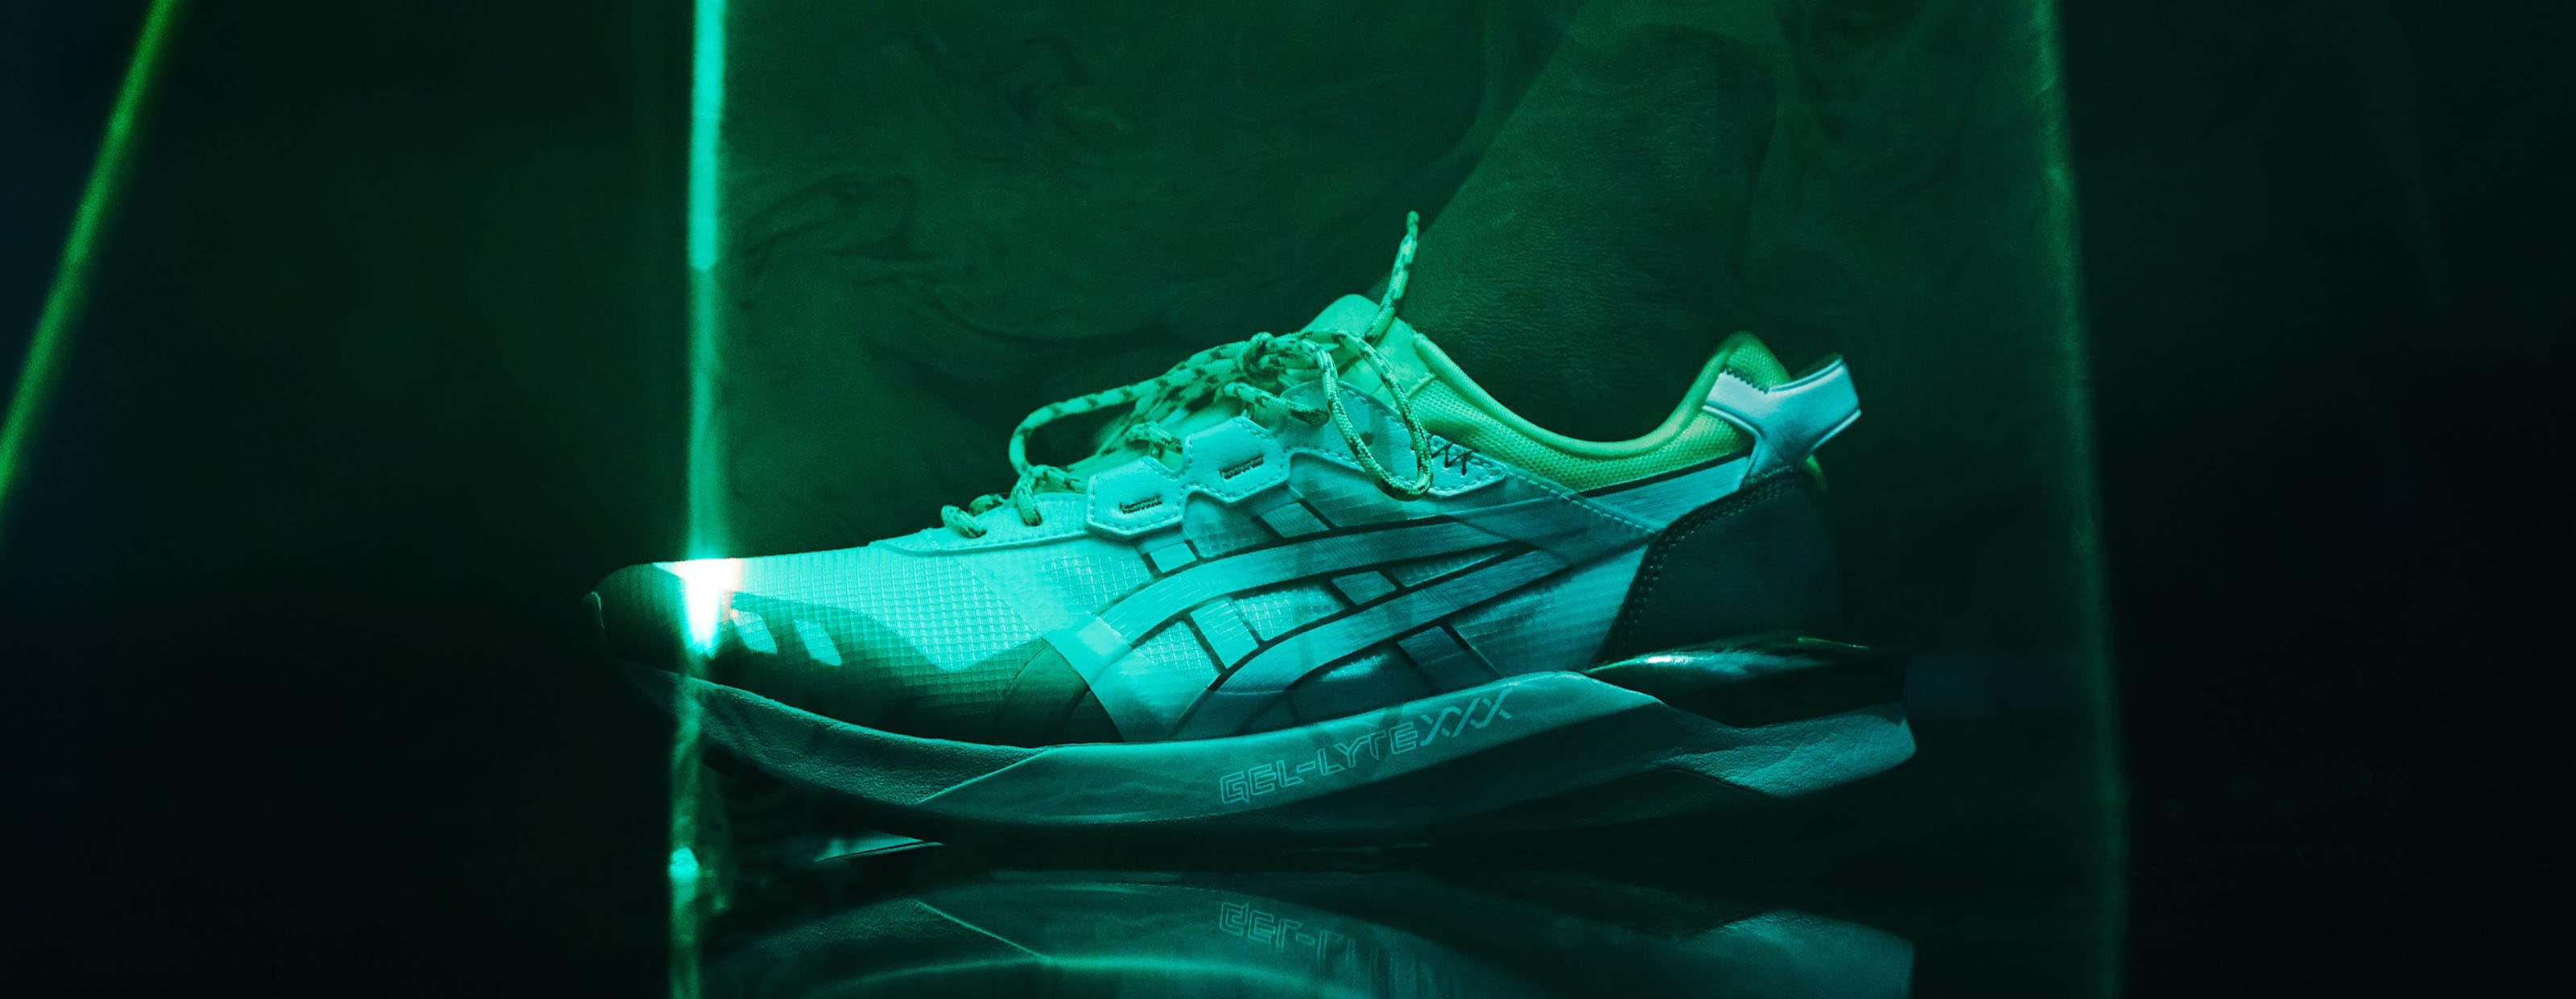 sps gel-lyte XXX video thumb